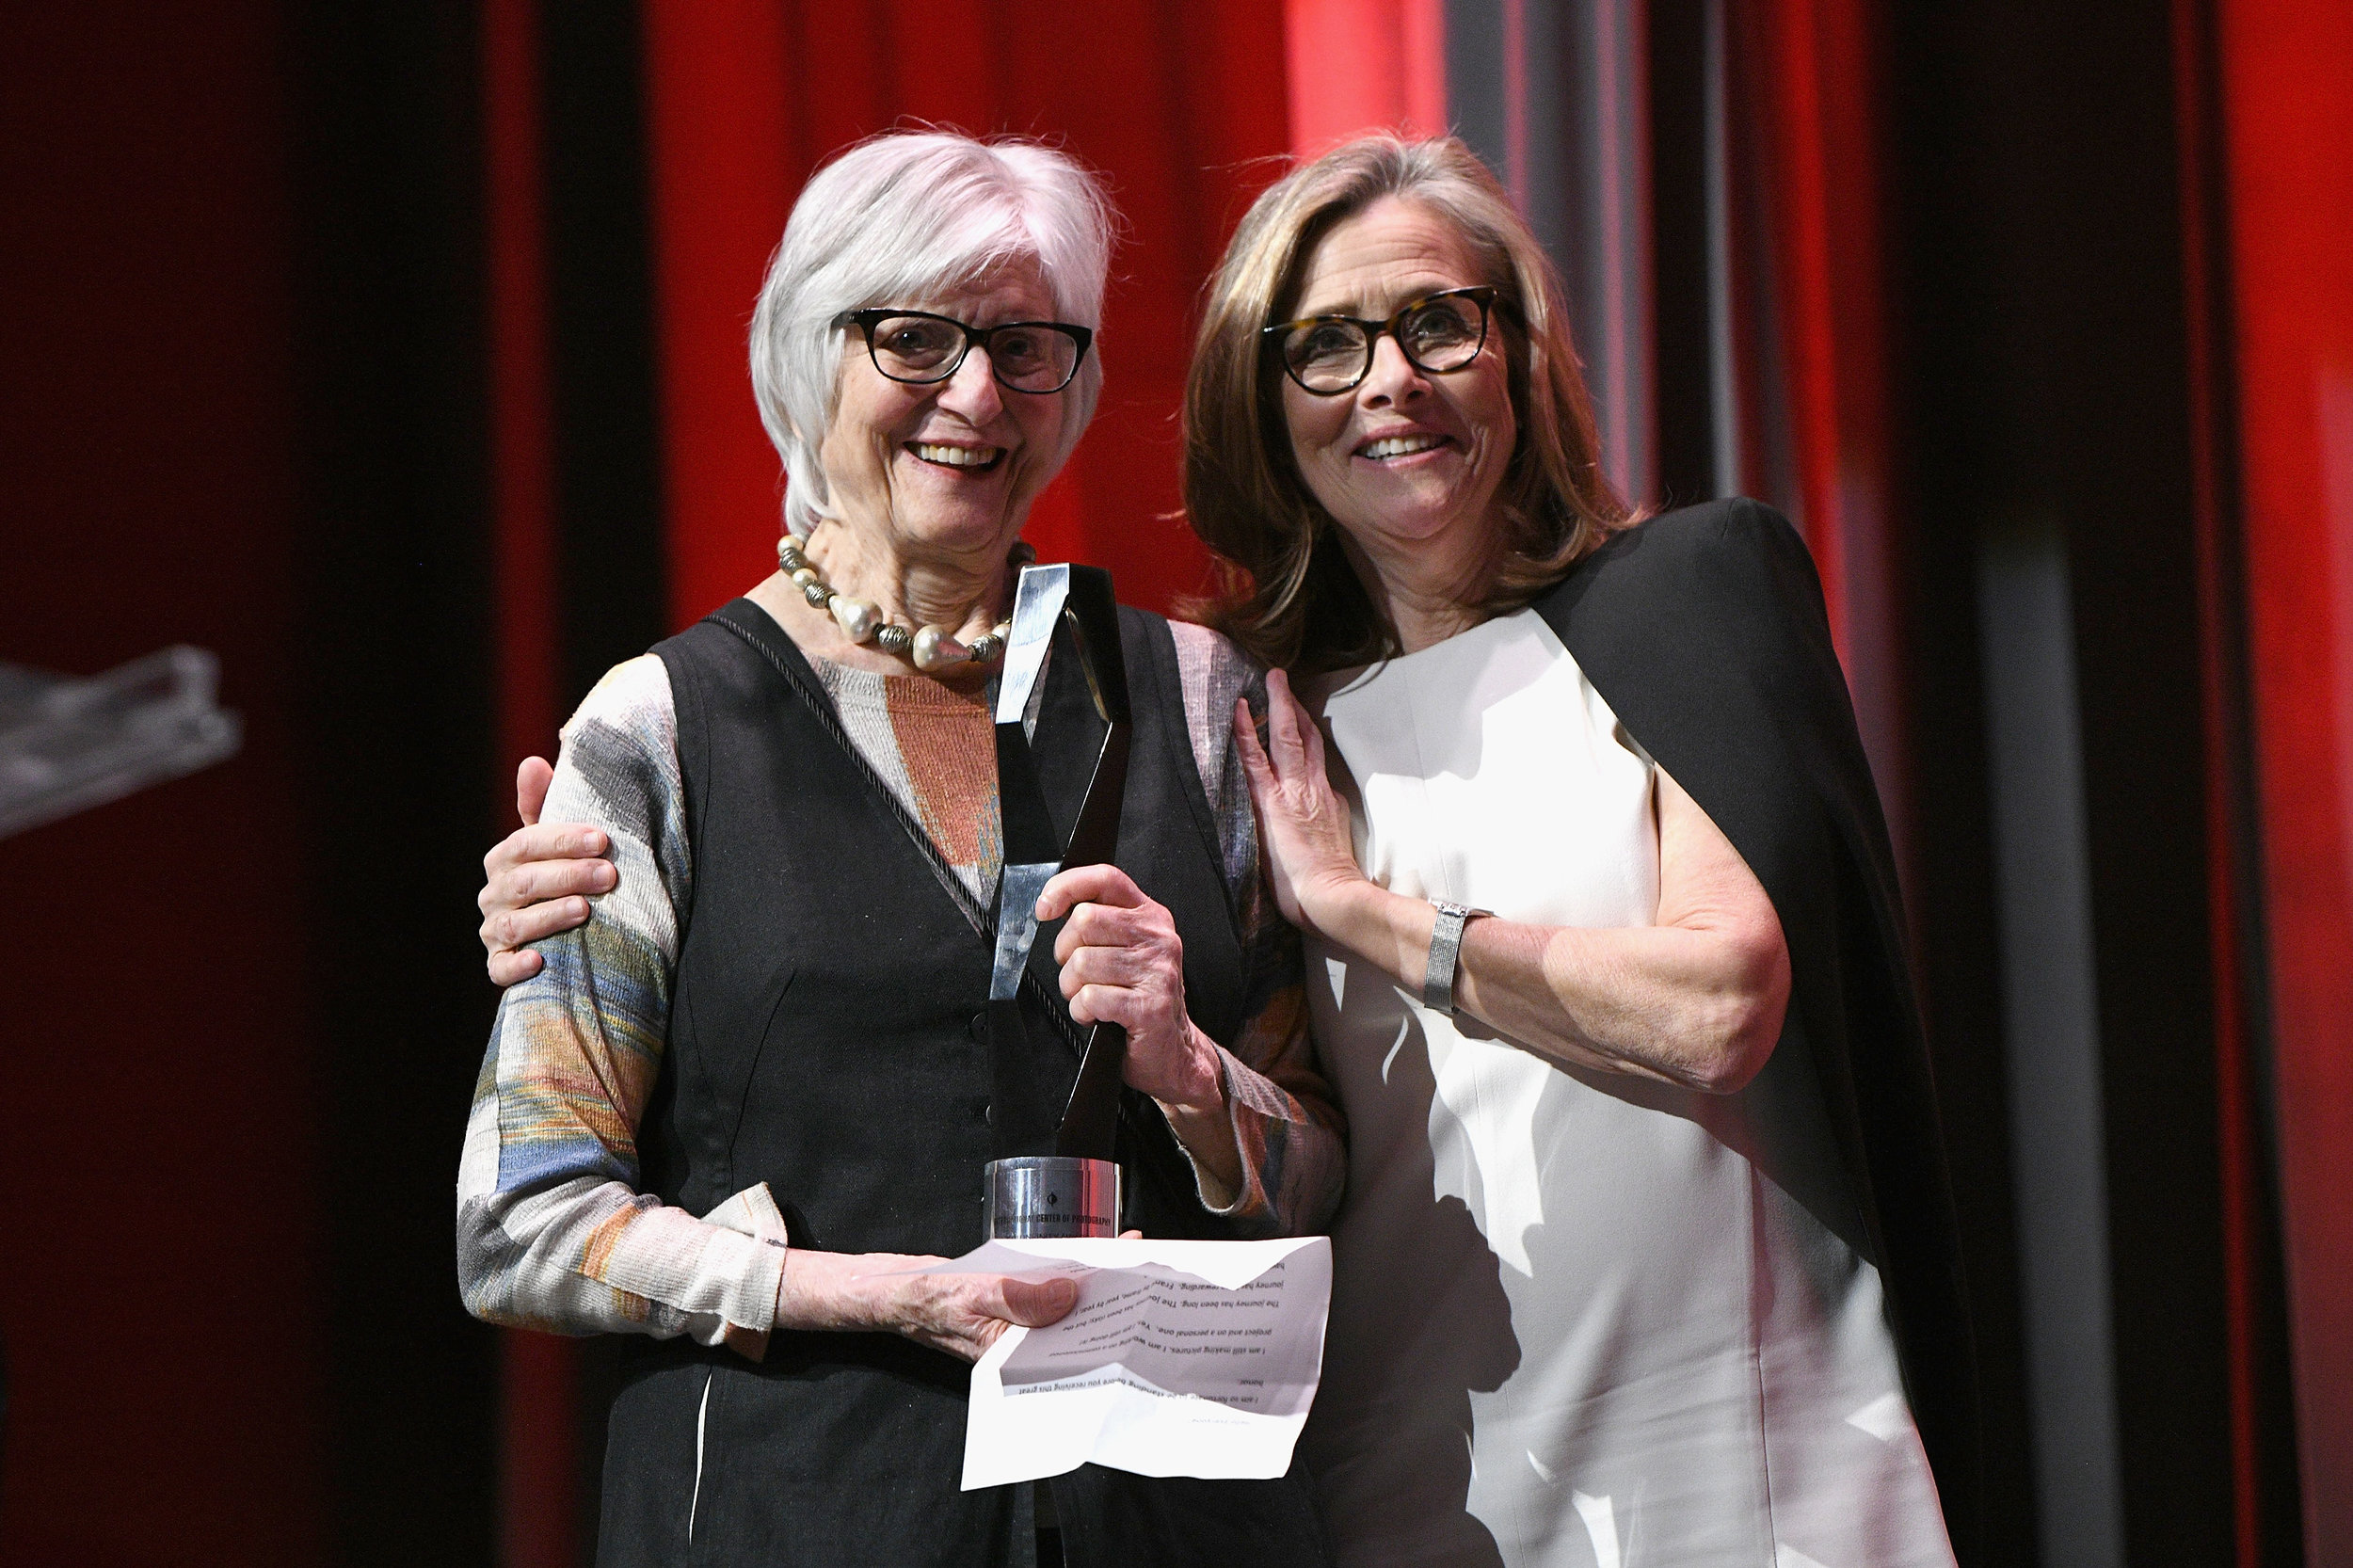 NEW YORK, NY - APRIL 02: Honoree and photographer Rosalind Fox Solomon and host Meredith Vieira pose onstage during The International Center Of Photography's 35th Annual Infinity Awards at The Ziegfeld Ballroom on April 2, 2019 in New York City. (Photo by Bryan Bedder/Getty Images for International Center of Photography)